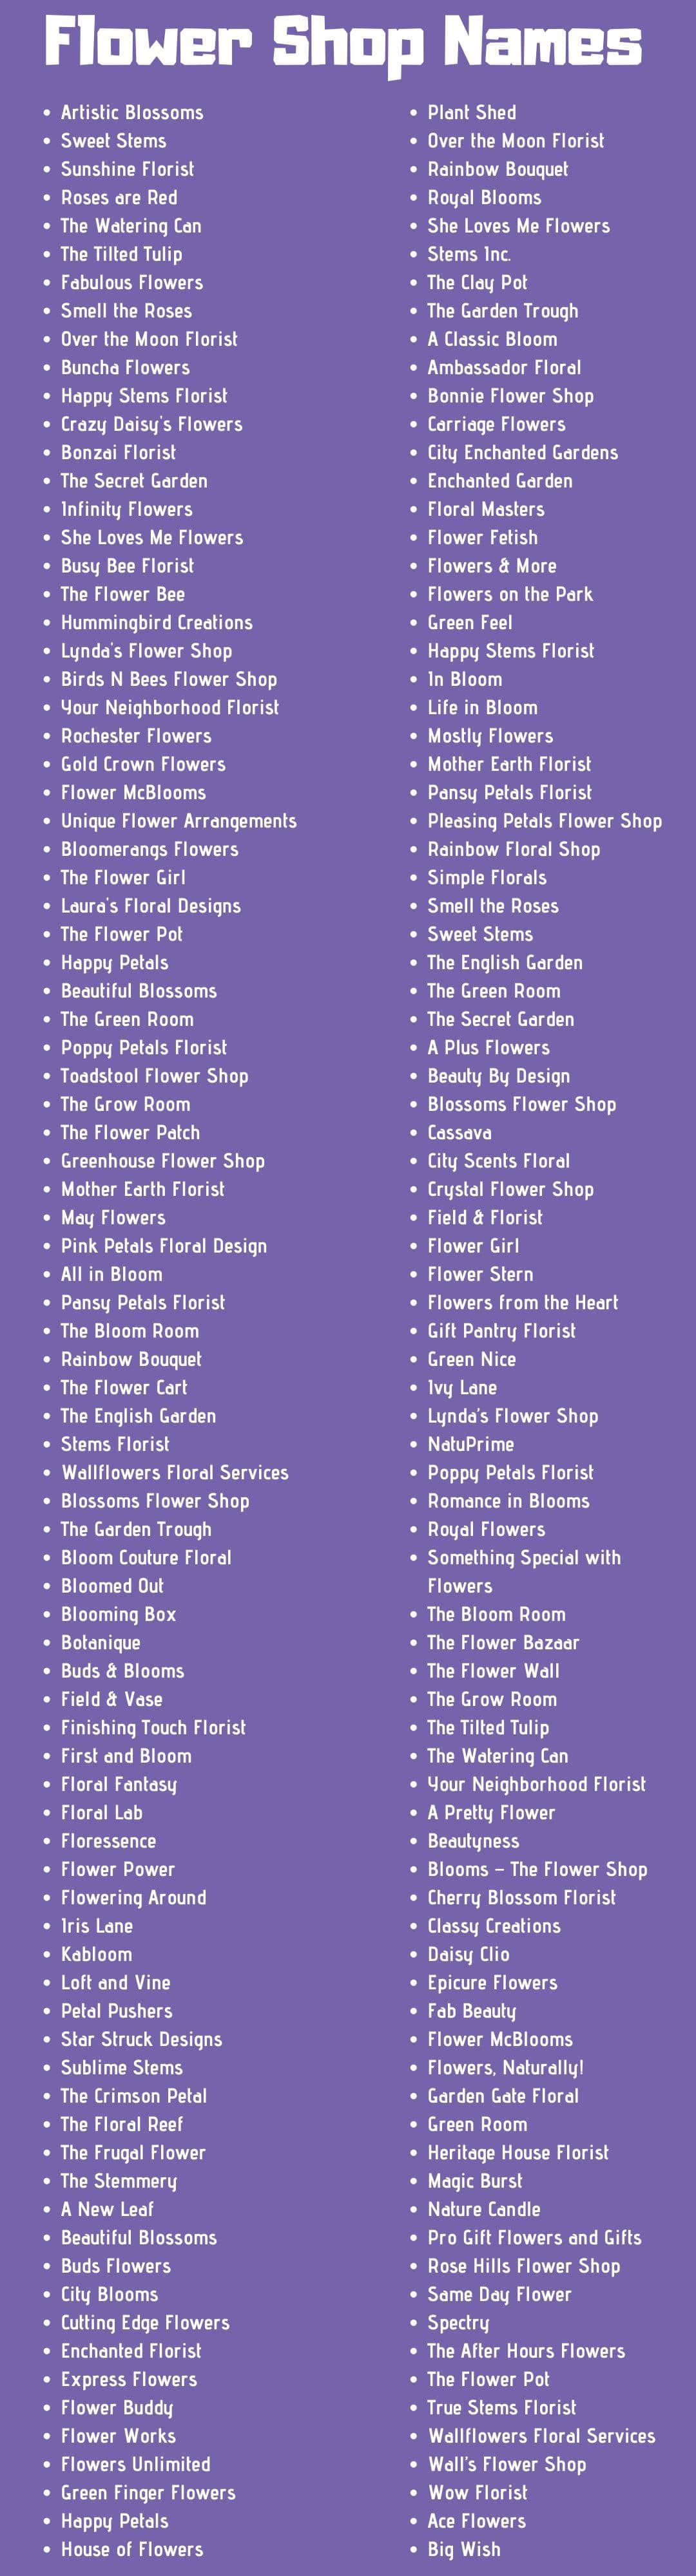 473 Flower Shop Names Ideas And Suggestions